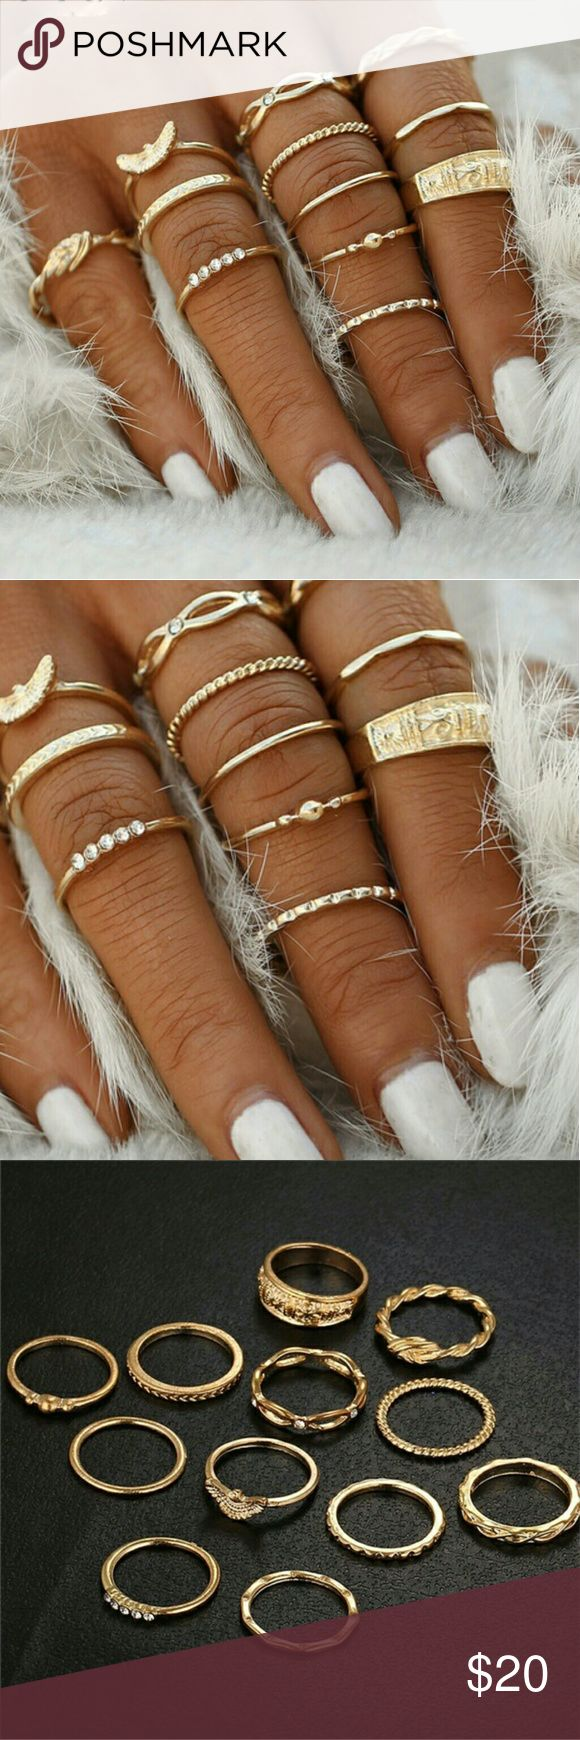 SUPER HOT!GOLD MIDI RING SET! So cute and definitely on trend.  Set features 12 piece gold plated midi ring set with base metal alloy.  Perect and easy way to accessorize any outfit.  BUNDLE your order to SAVE on PRICE or SUBMIT your OFFER!  Tags gypsy body jewelry boho beach lingerie, thong, g-string, bra, bralette, thong, bikini, two piece, string bikini, crop top, pink, bathing suit, body harness, free people,  stockings,push up, padded bra, secret, nasty gal, agent, Steve madden, miss…